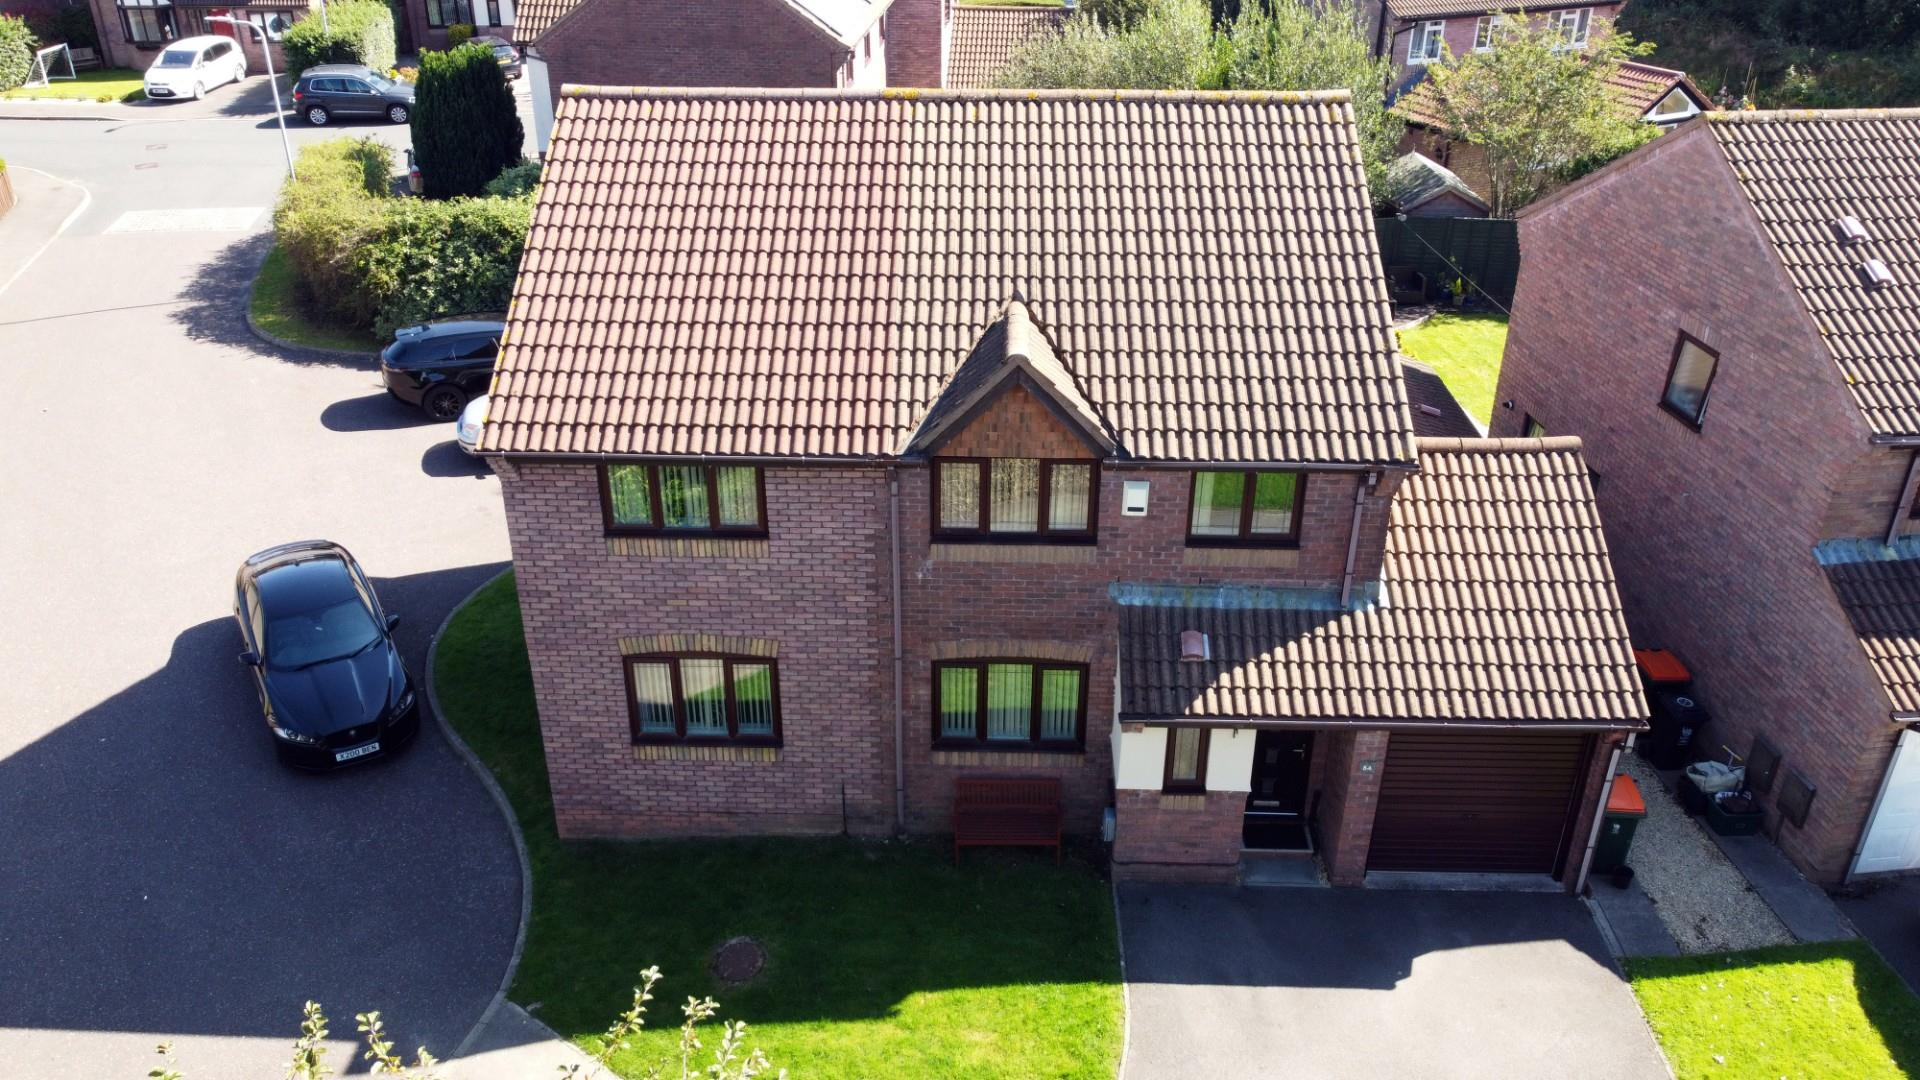 4 bed detached house for sale in The Meadows, Cardiff - Property Image 1